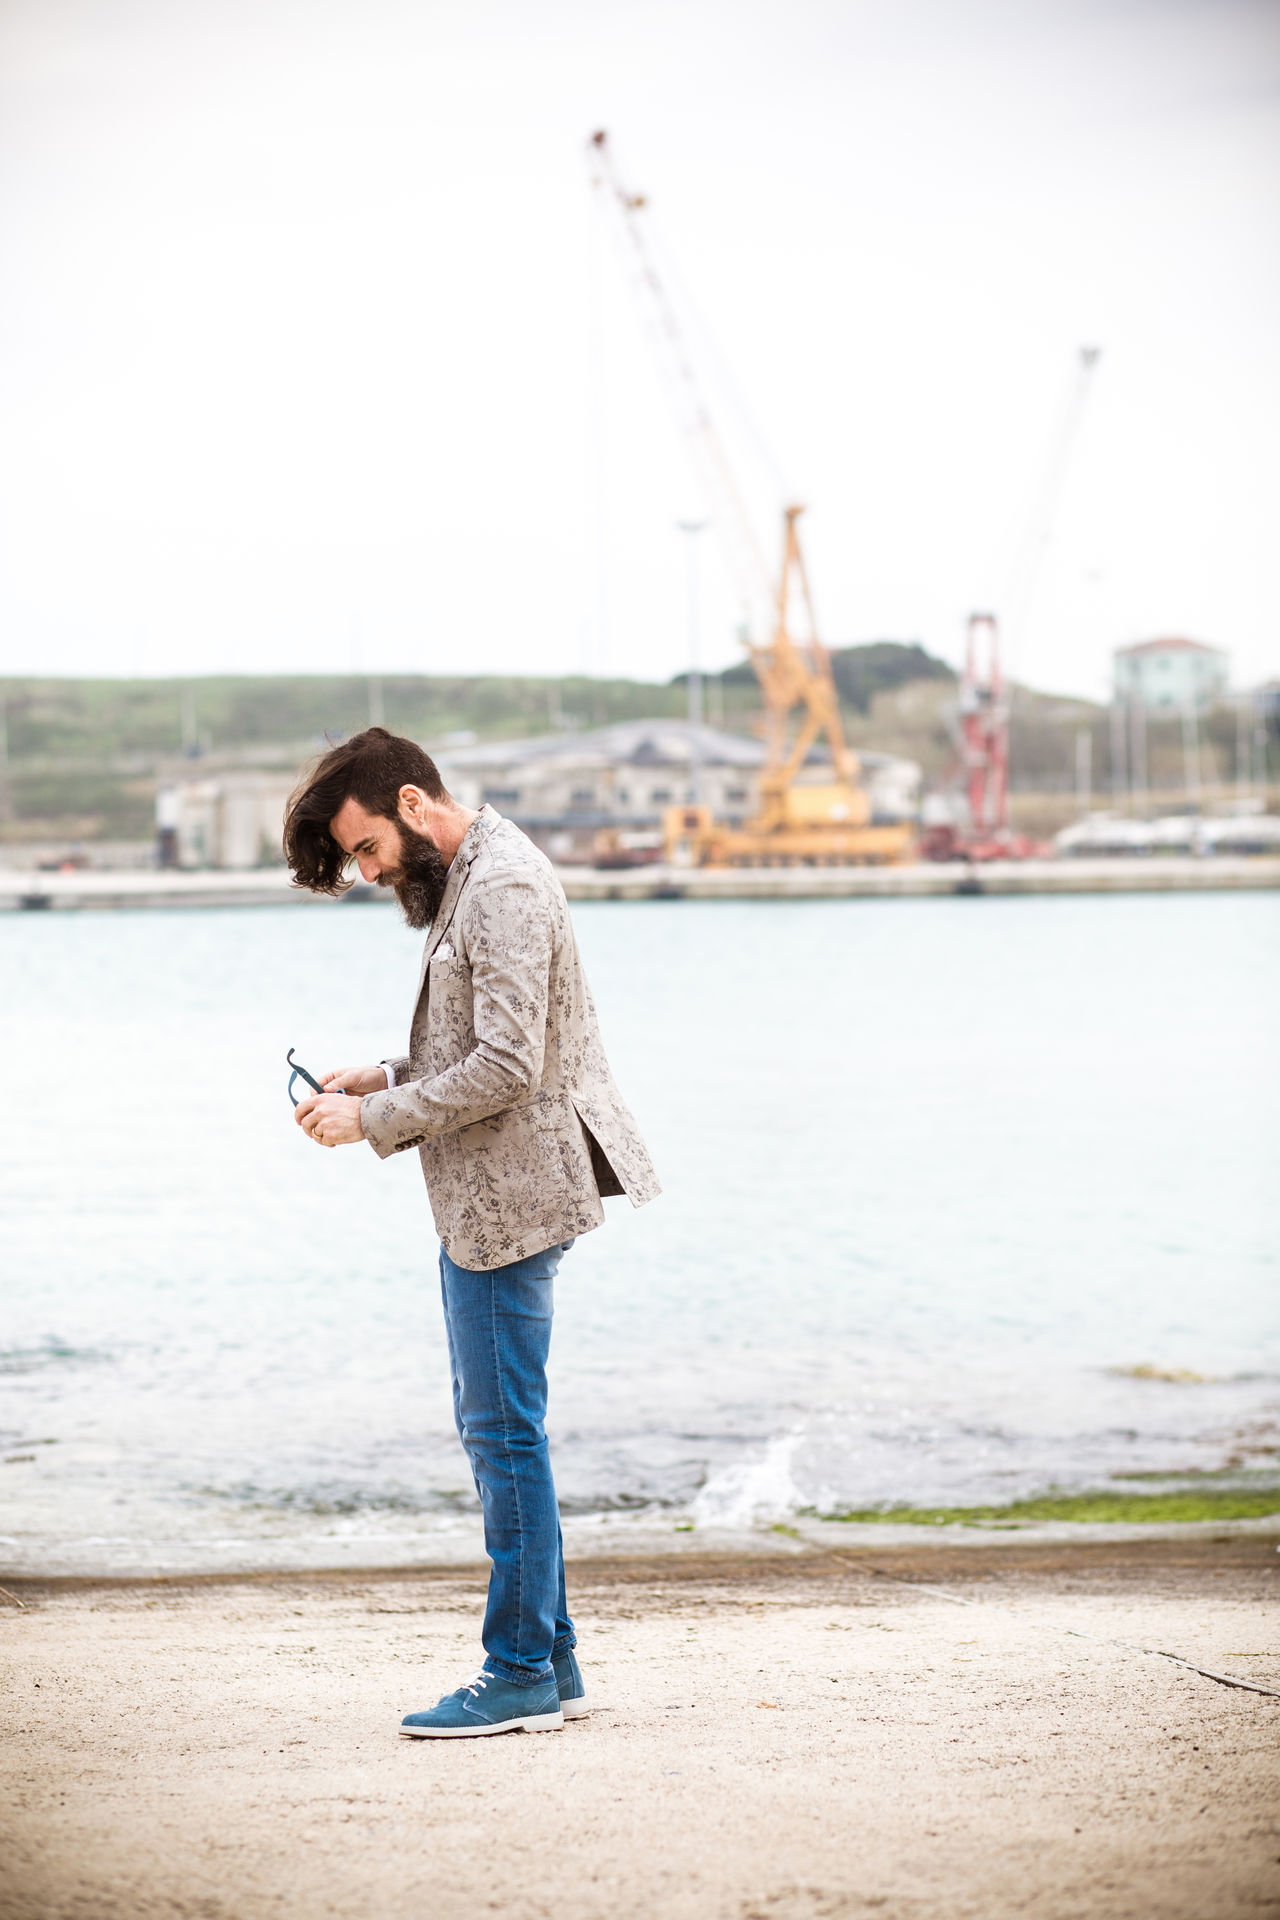 Beautiful stock photos of baer, full length, side view, sea, casual clothing